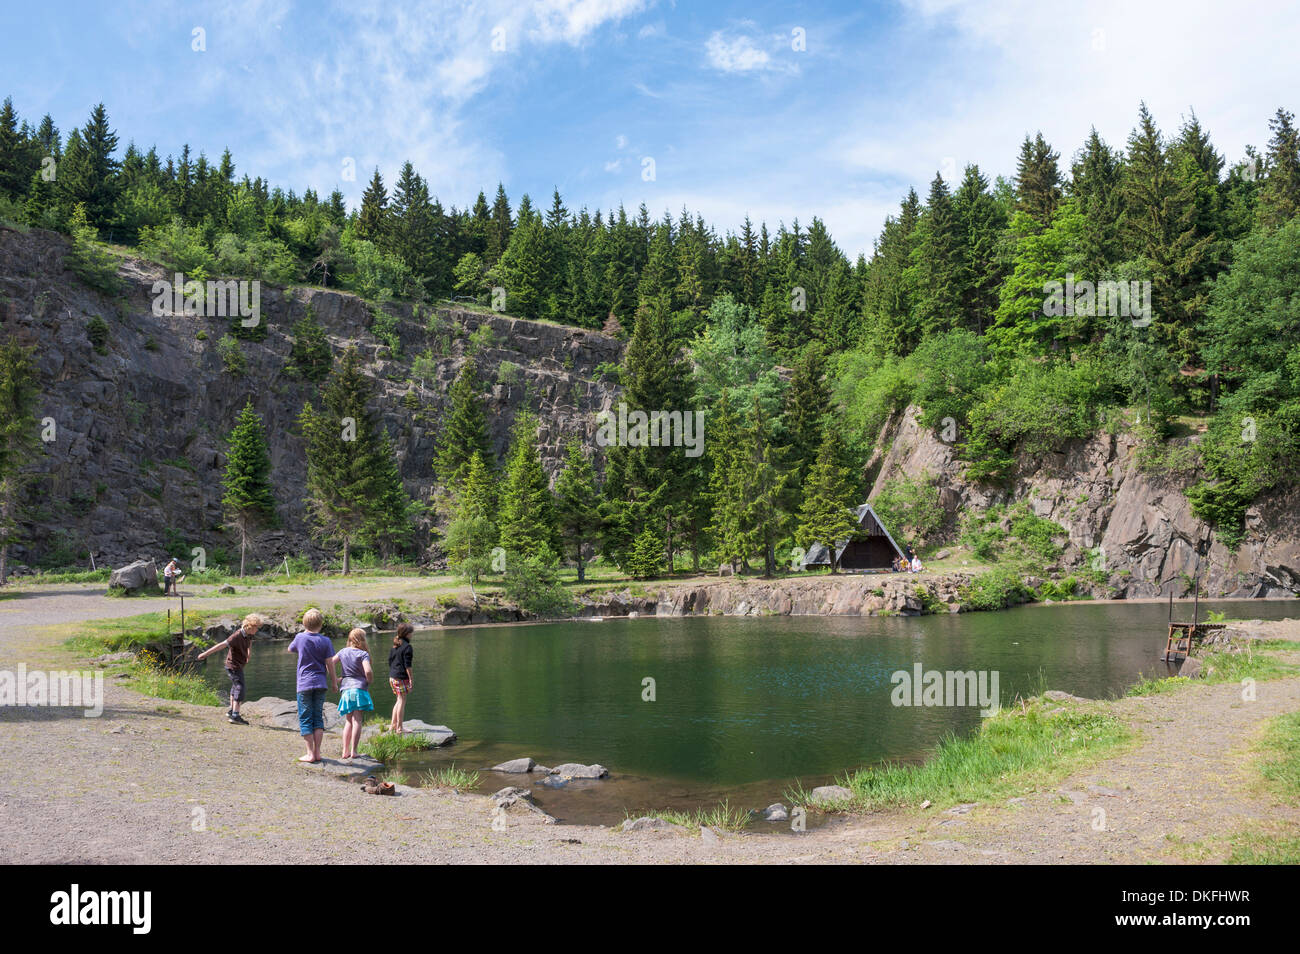 Bergsee Ebertswiese, mountain lake, place of excursions, swimming lake, at Rennsteig ridge walk, Thuringian Forest, Thuringia - Stock Image